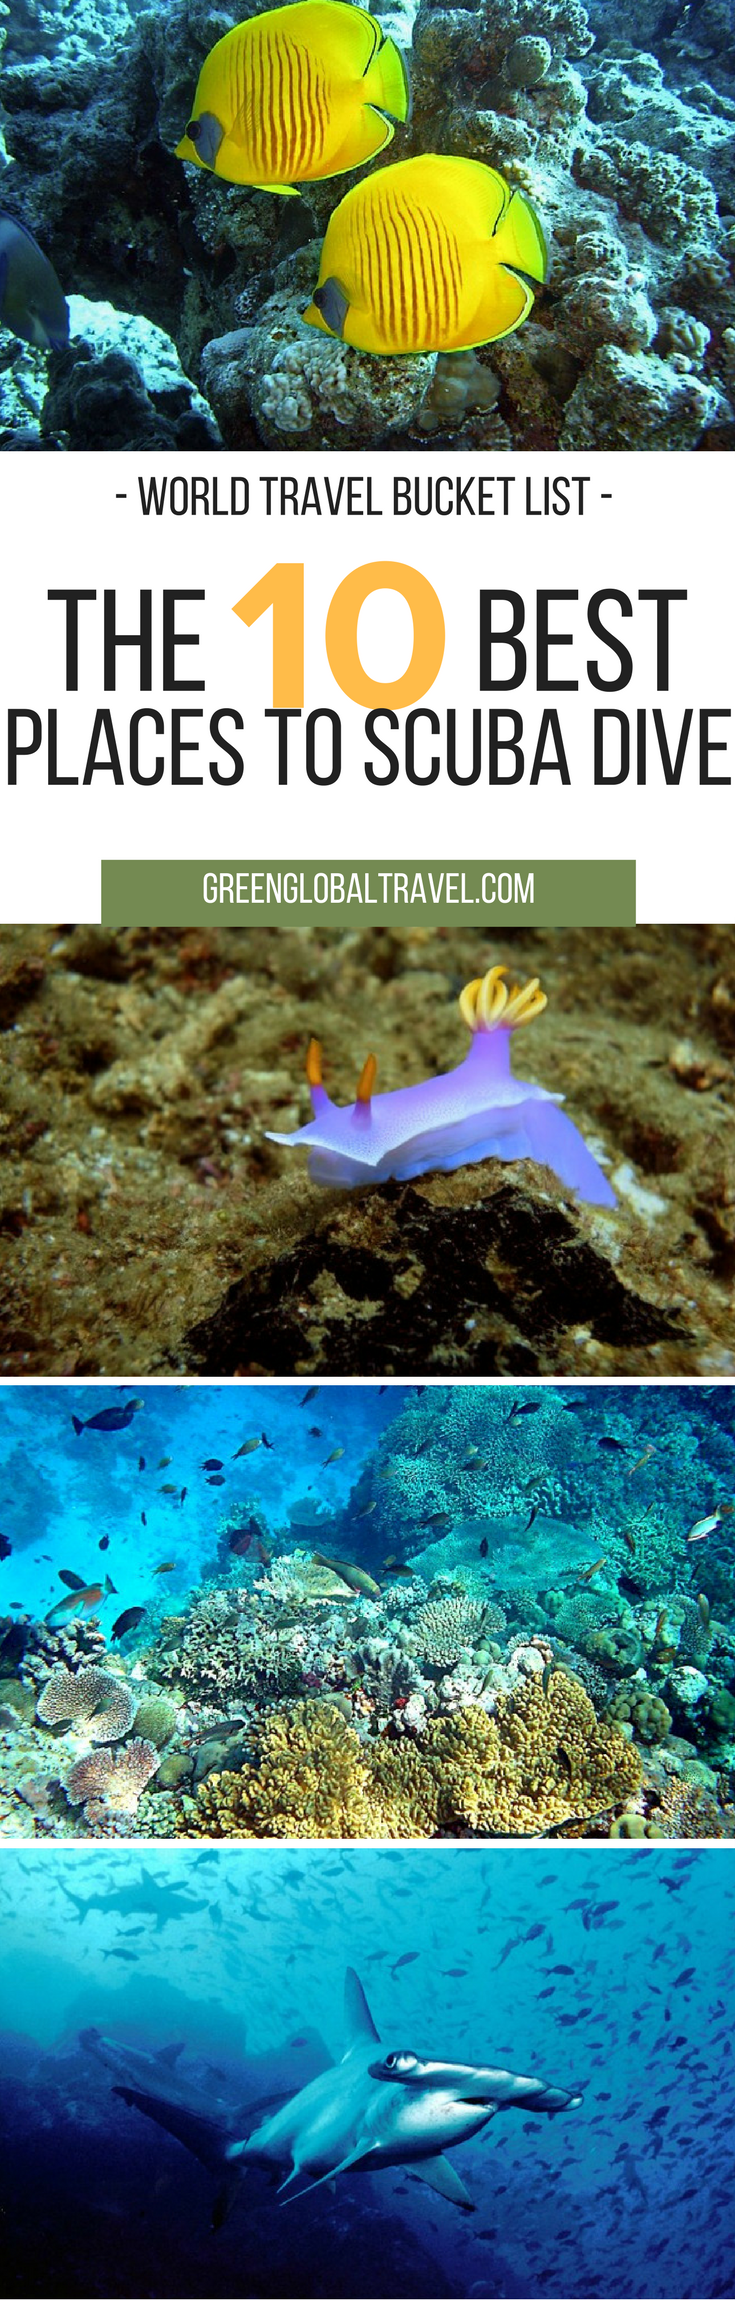 Best Places To Scuba Dive For A World Travel Bucket List - The snorkeling guide to florida 10 spots for underwater exploring